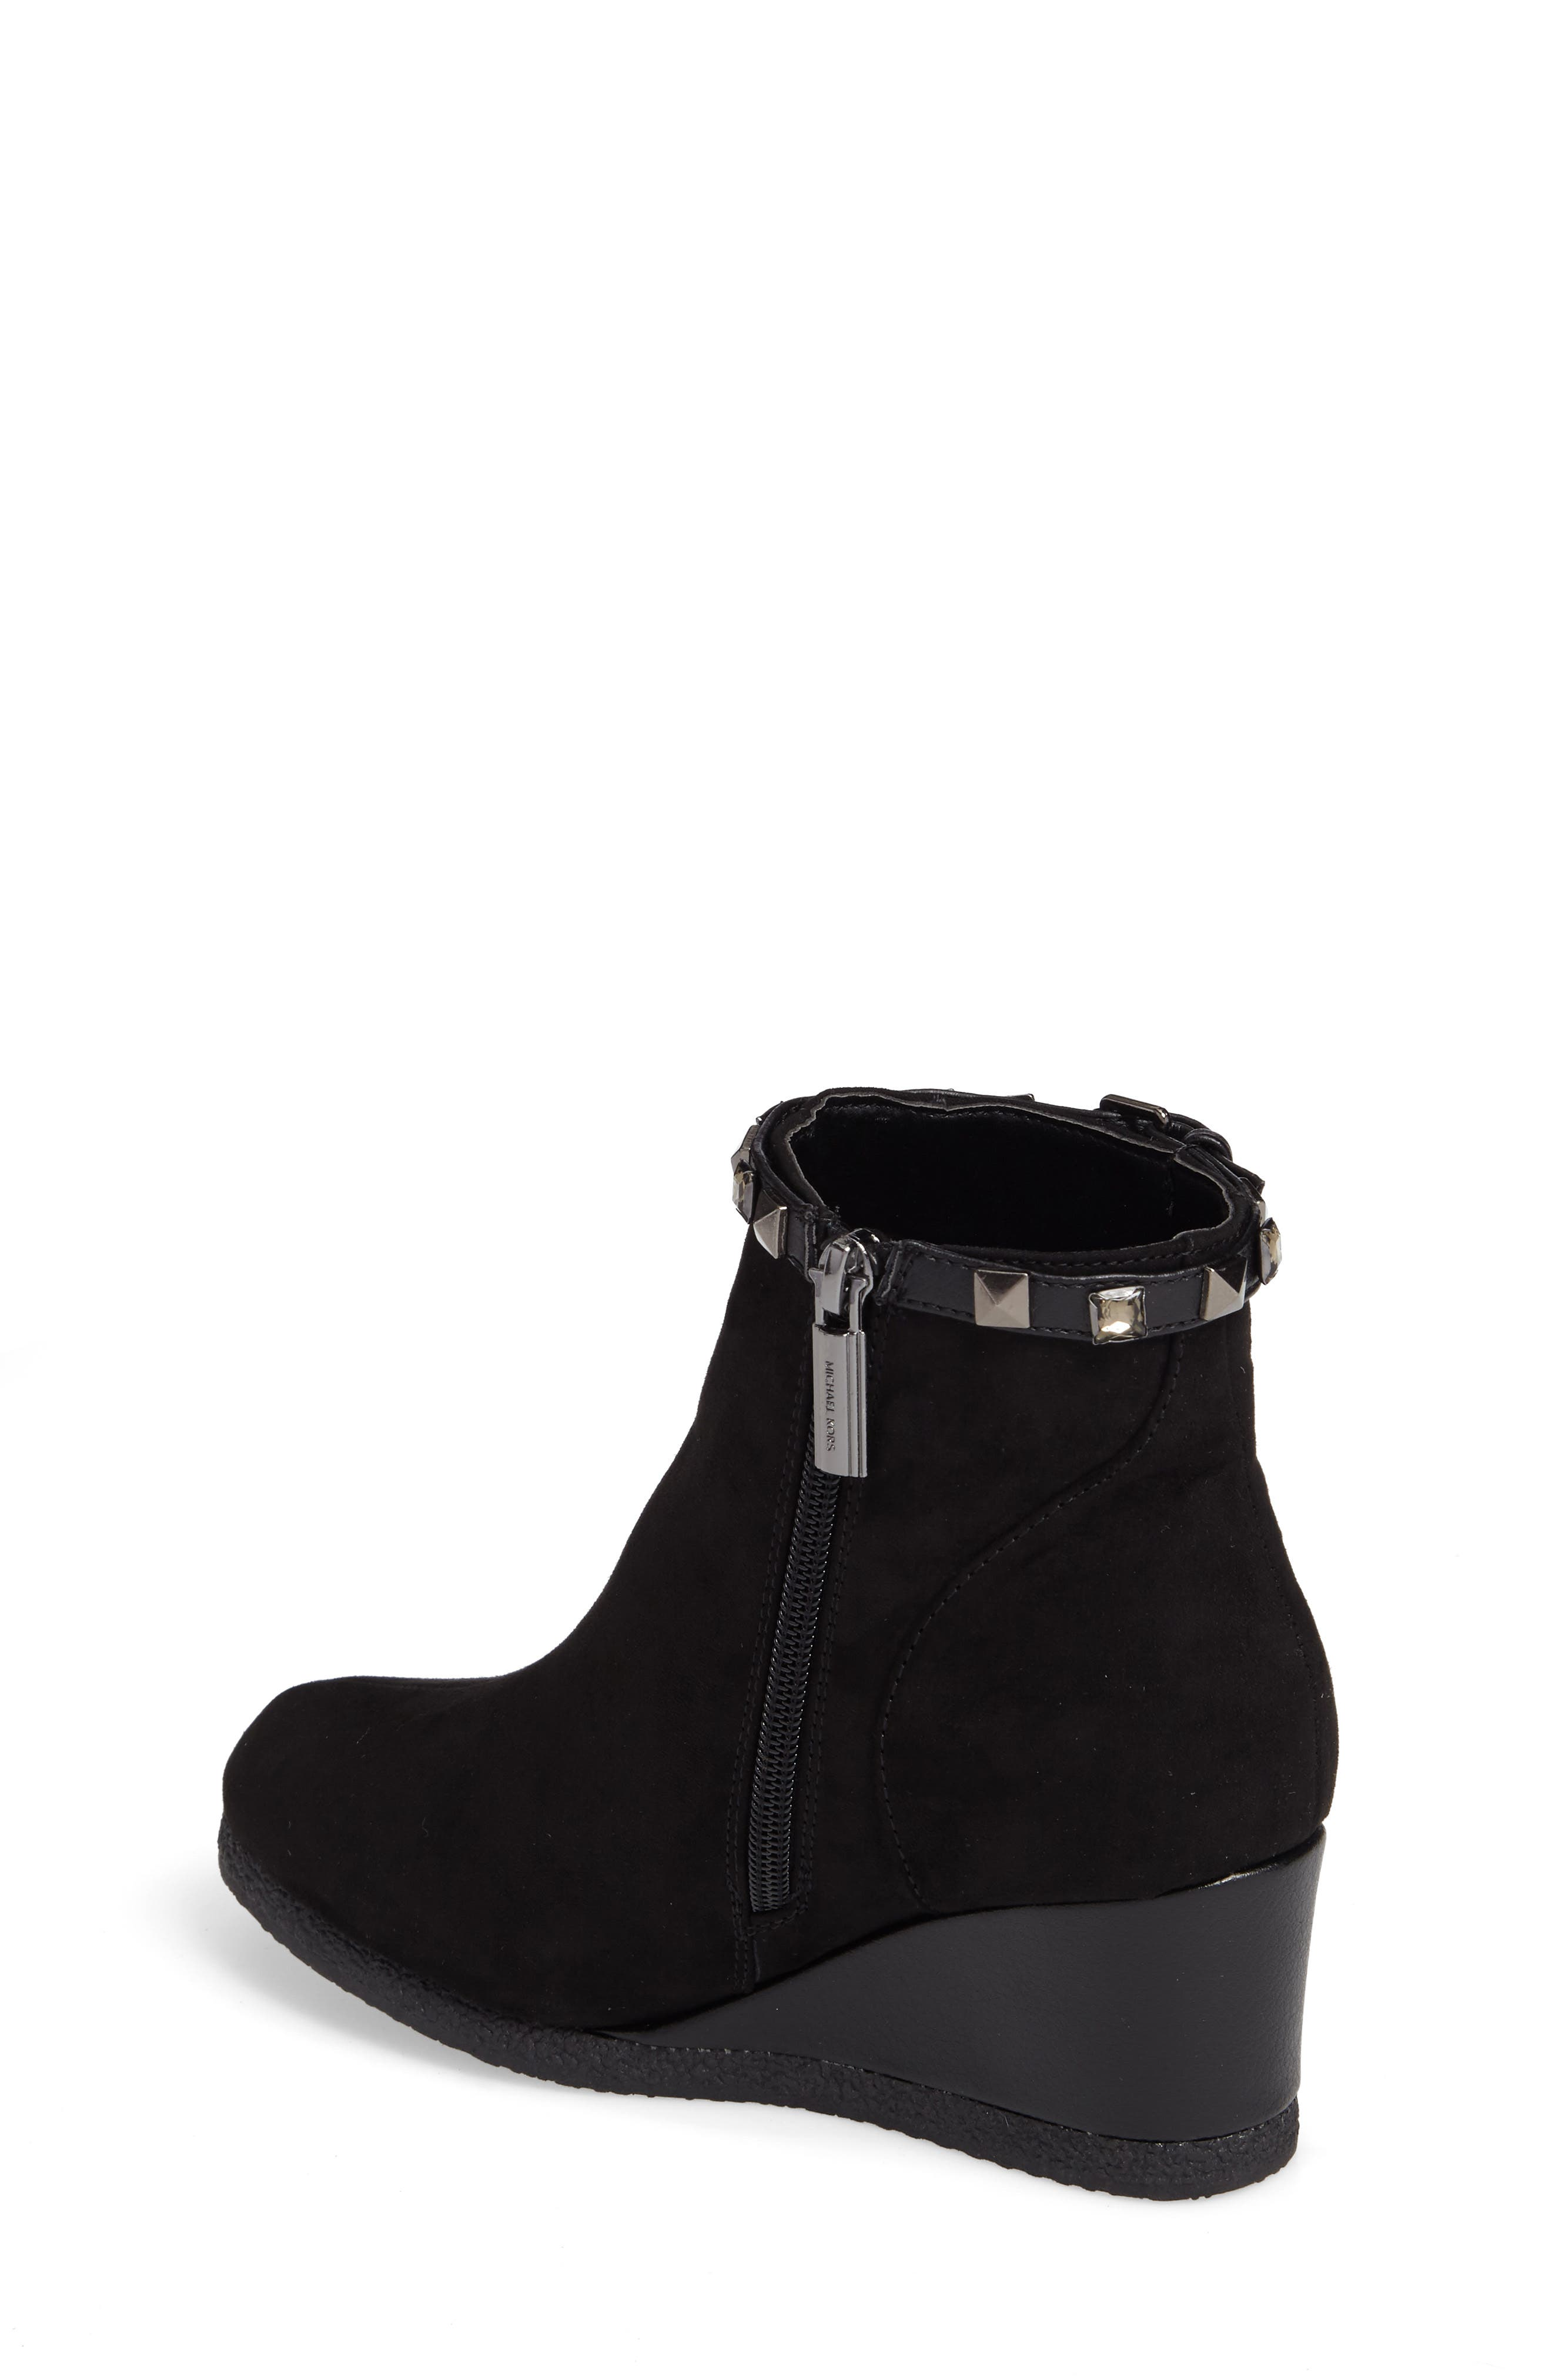 Cara Key Studded Wedge Bootie,                             Alternate thumbnail 2, color,                             Black